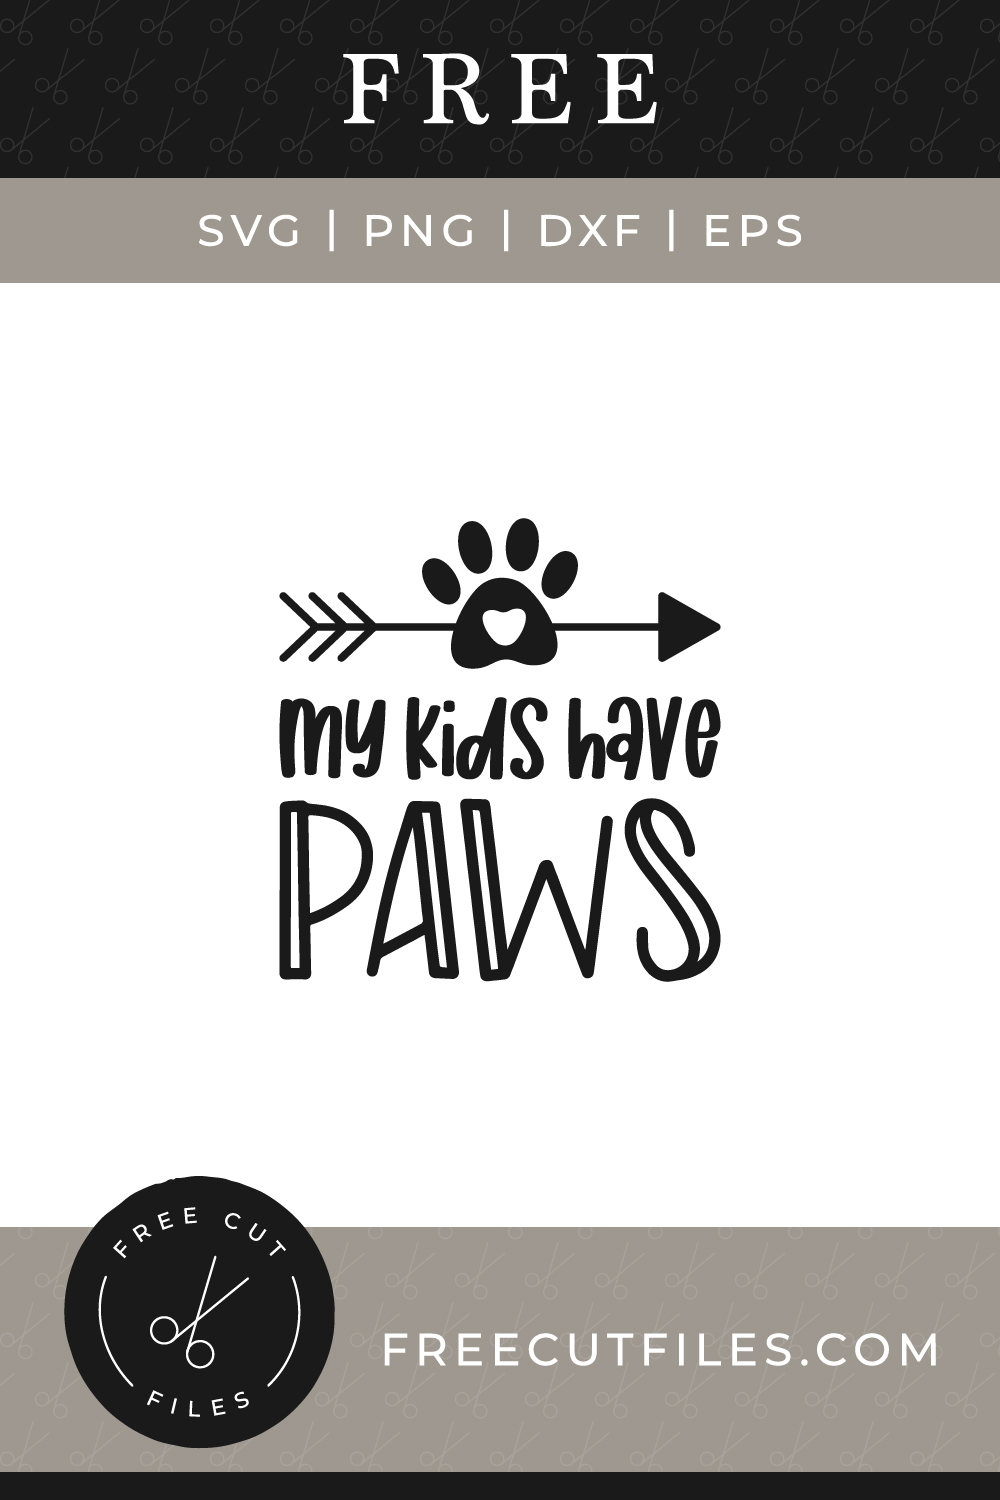 My Kids Have Paws Free Svg Cut File Free Cut Files